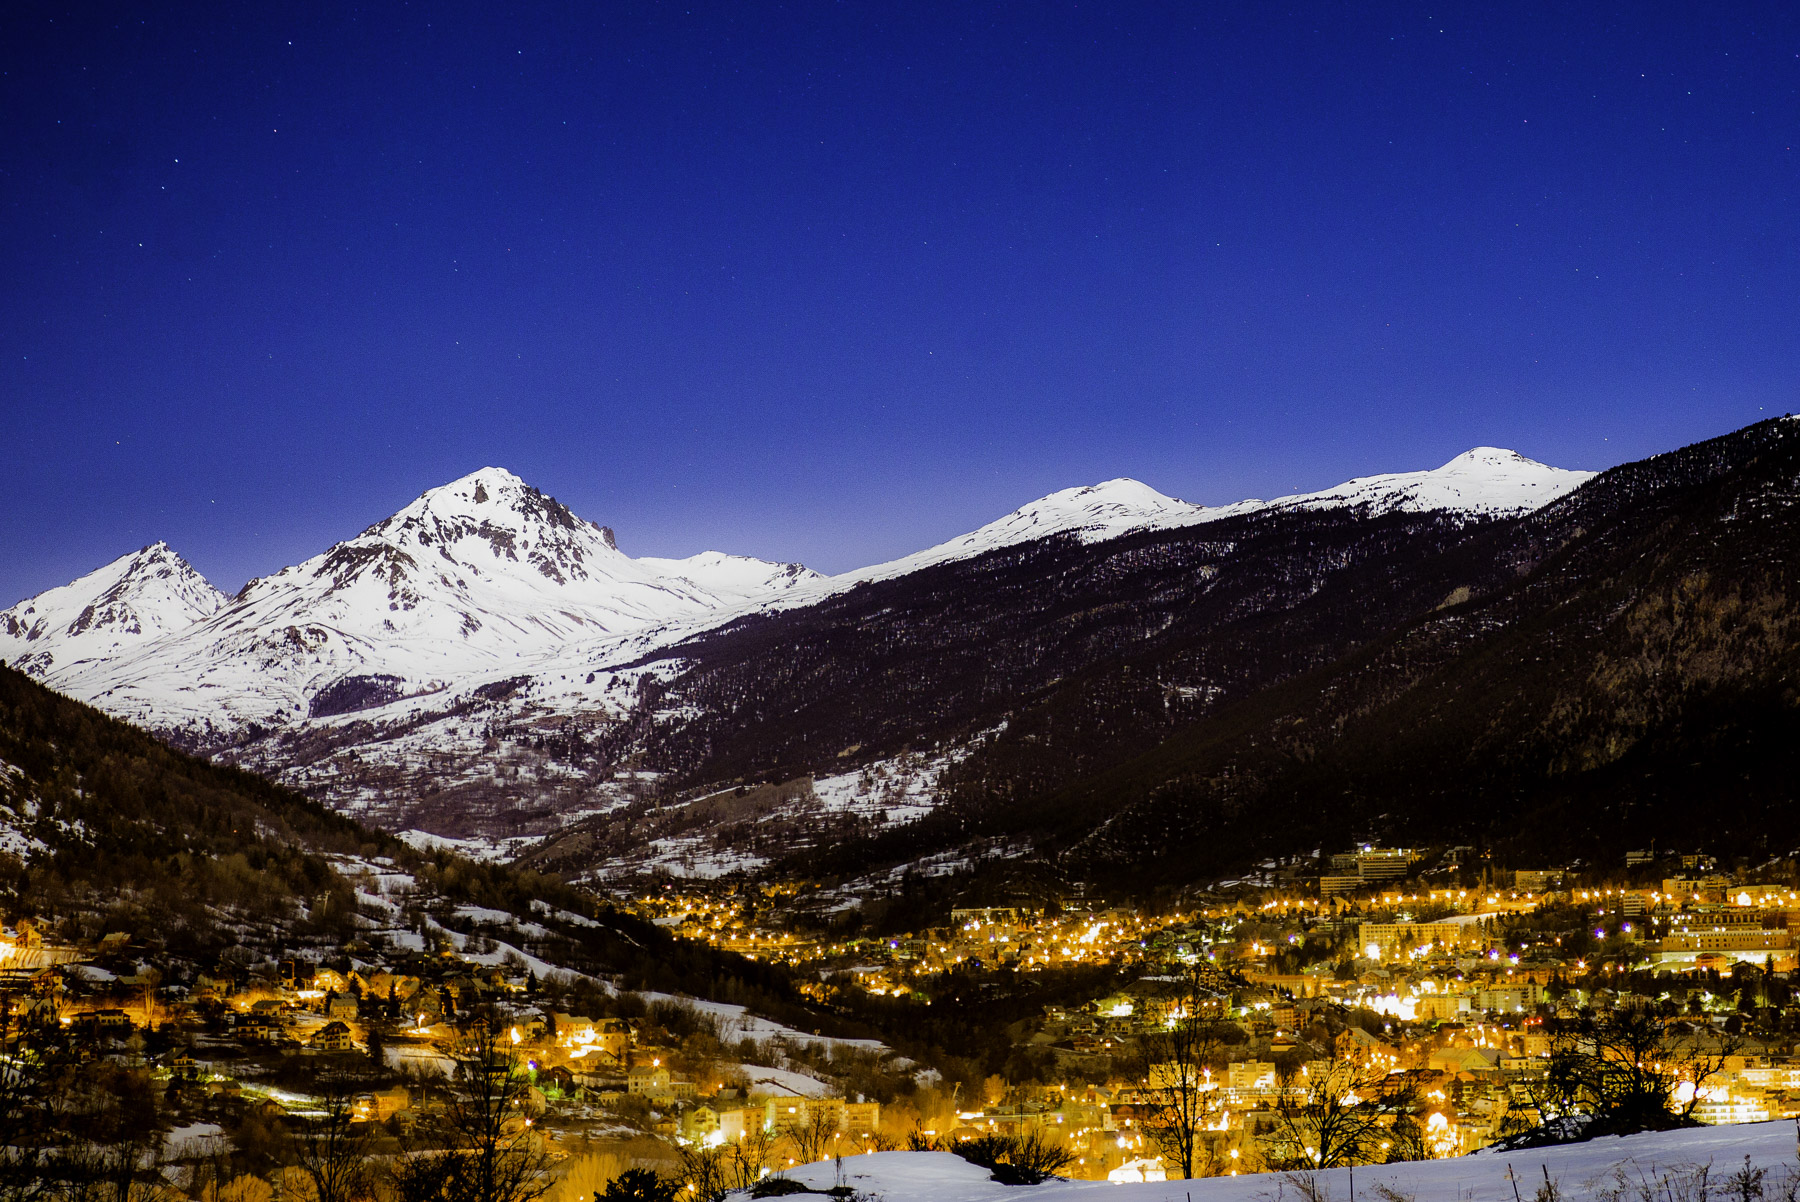 daniel-fine-photo-hyperfocale-623.jpg Briancon et le Grand Area snowmoon